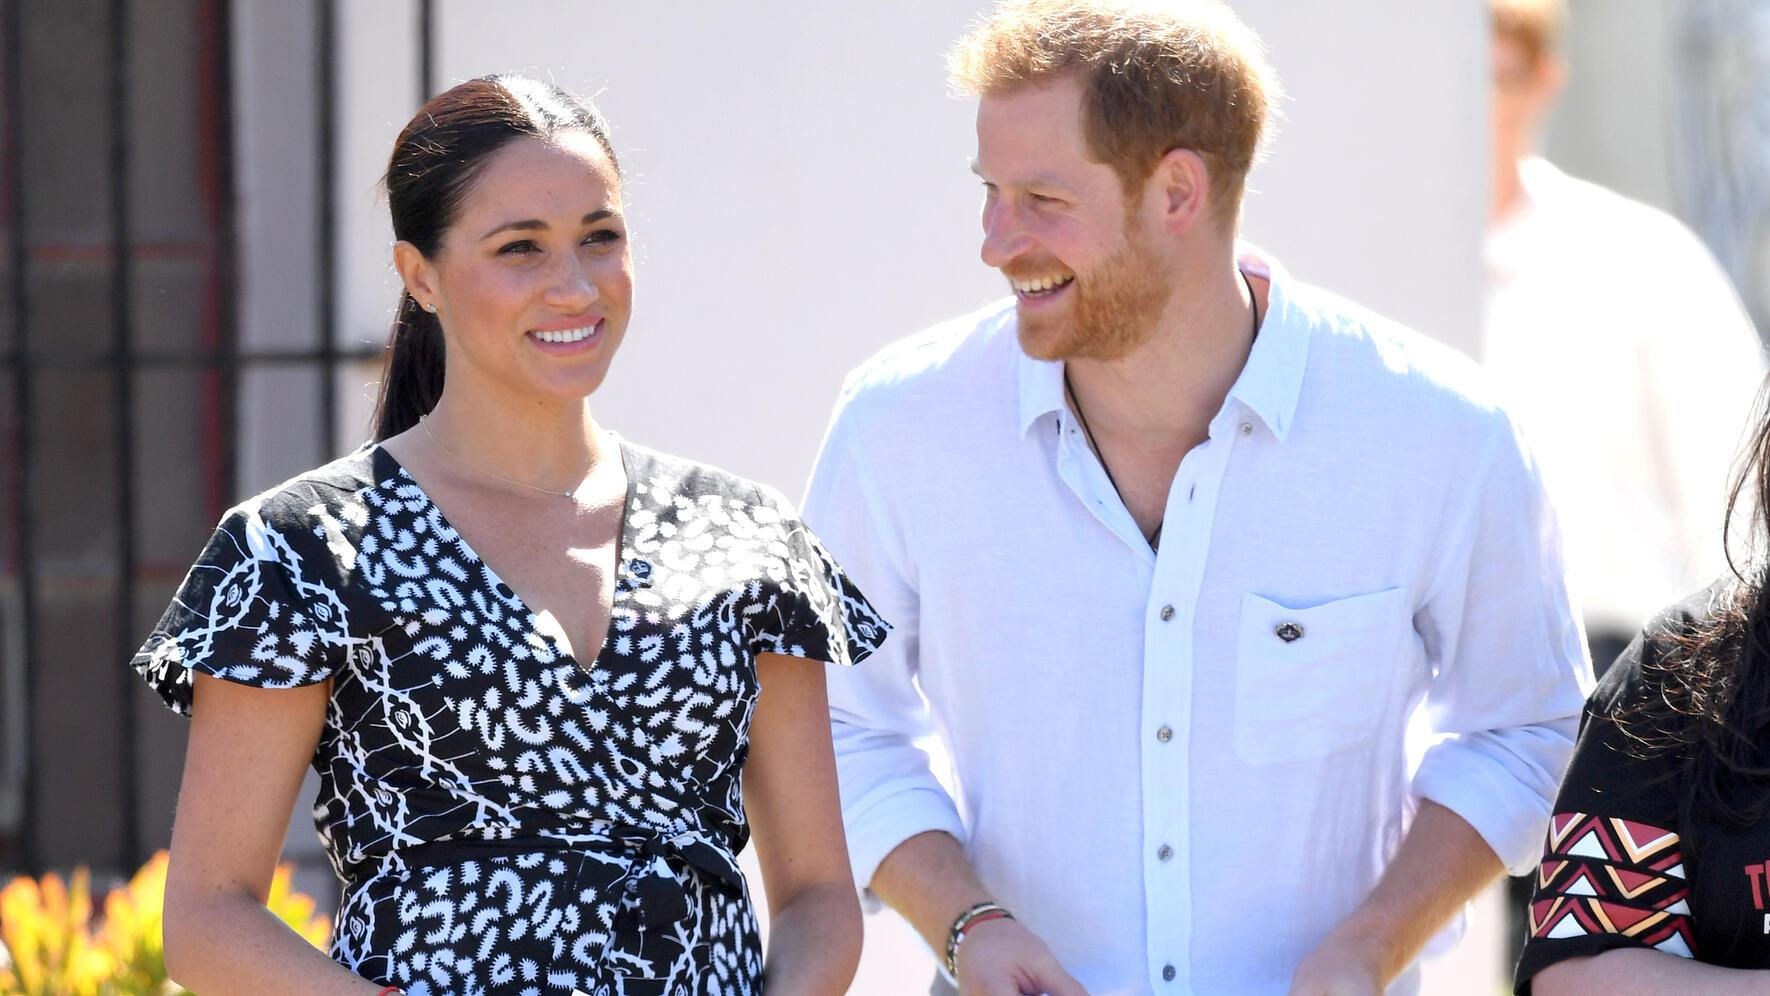 CAPE TOWN, SOUTH AFRICA - SEPTEMBER 23: Prince Harry, Duke of Sussex and Meghan, Duchess of Sussex visit the Nyanga Township during their royal tour of South Africa on September 23, 2019 in Cape Town, South Africa. (Photo by Karwai Tang/WireImage)